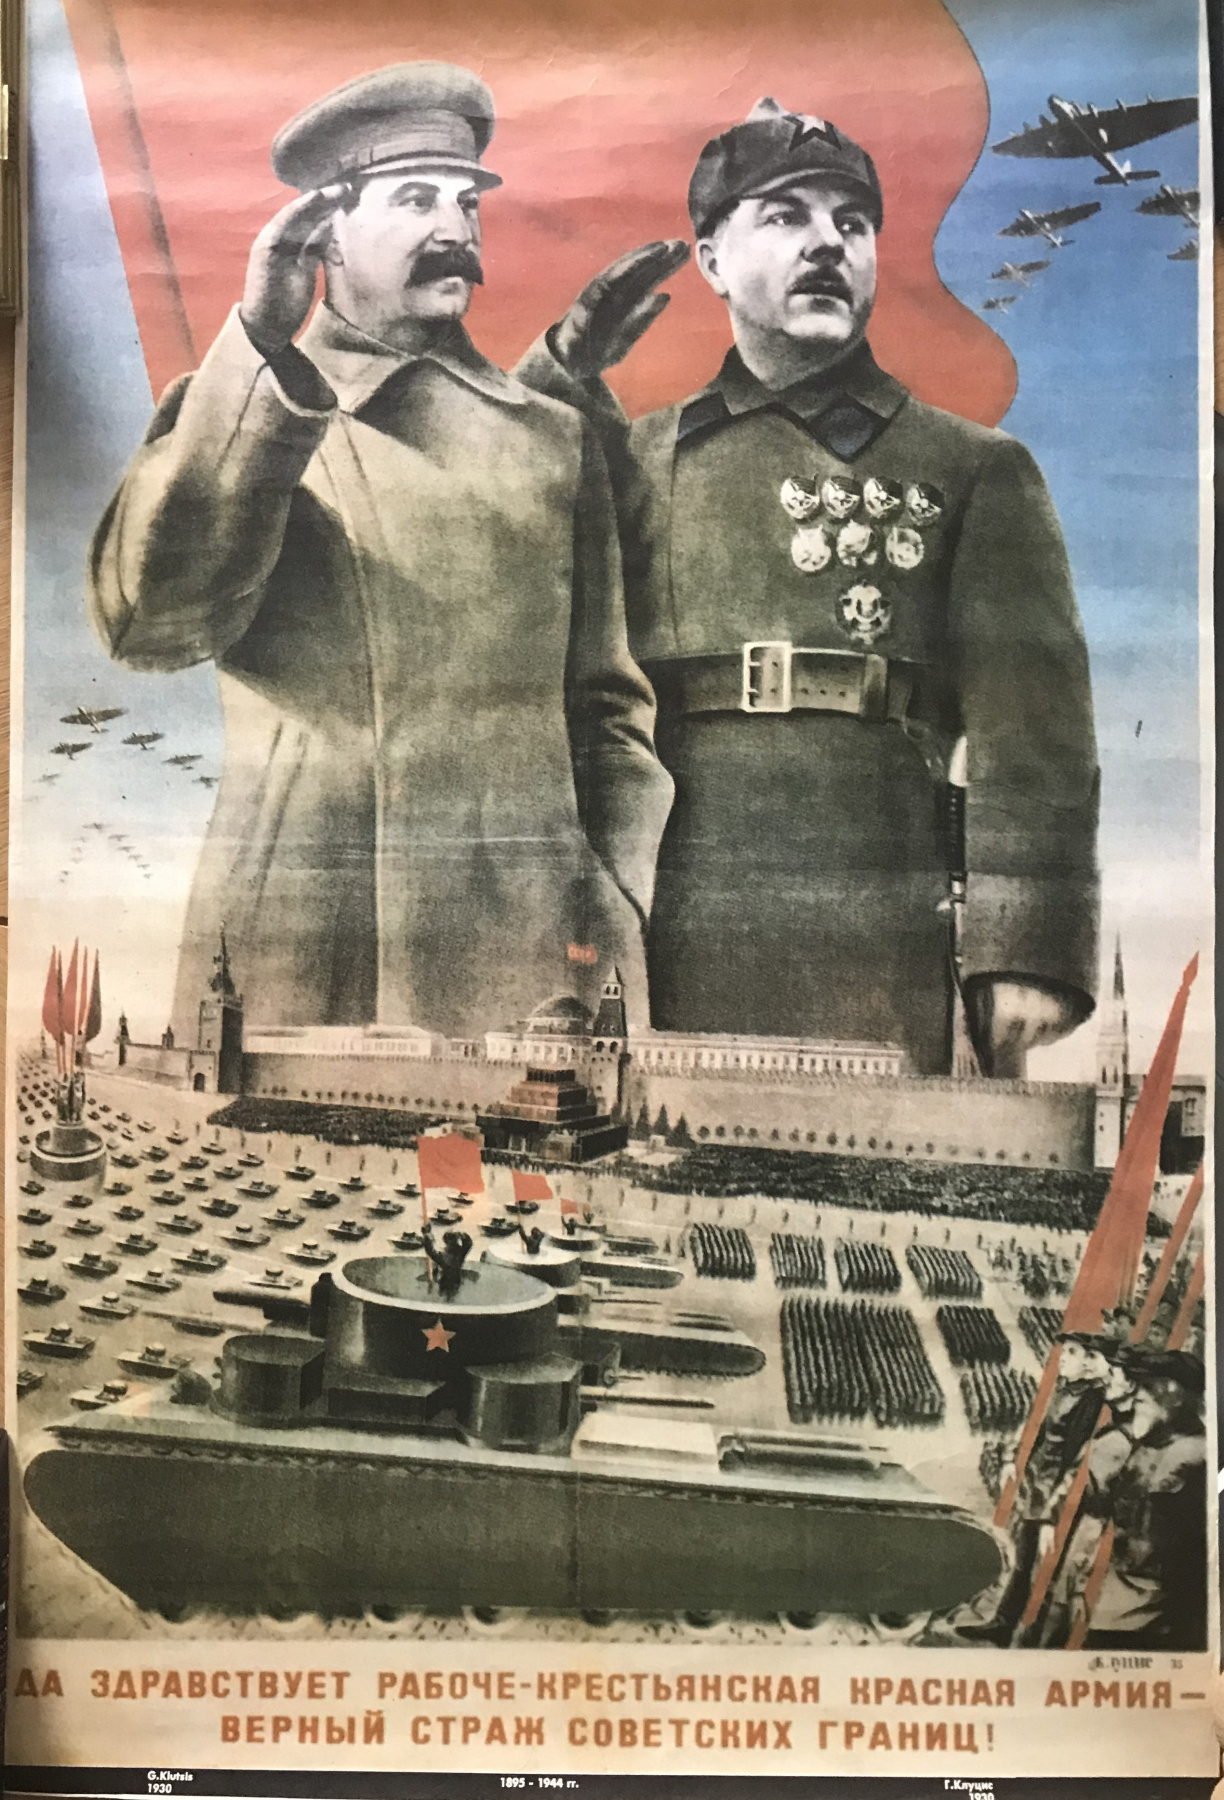 Klutsis G.. Long live the workers 'and peasants' army — a faithful guardian of the Soviet borders!